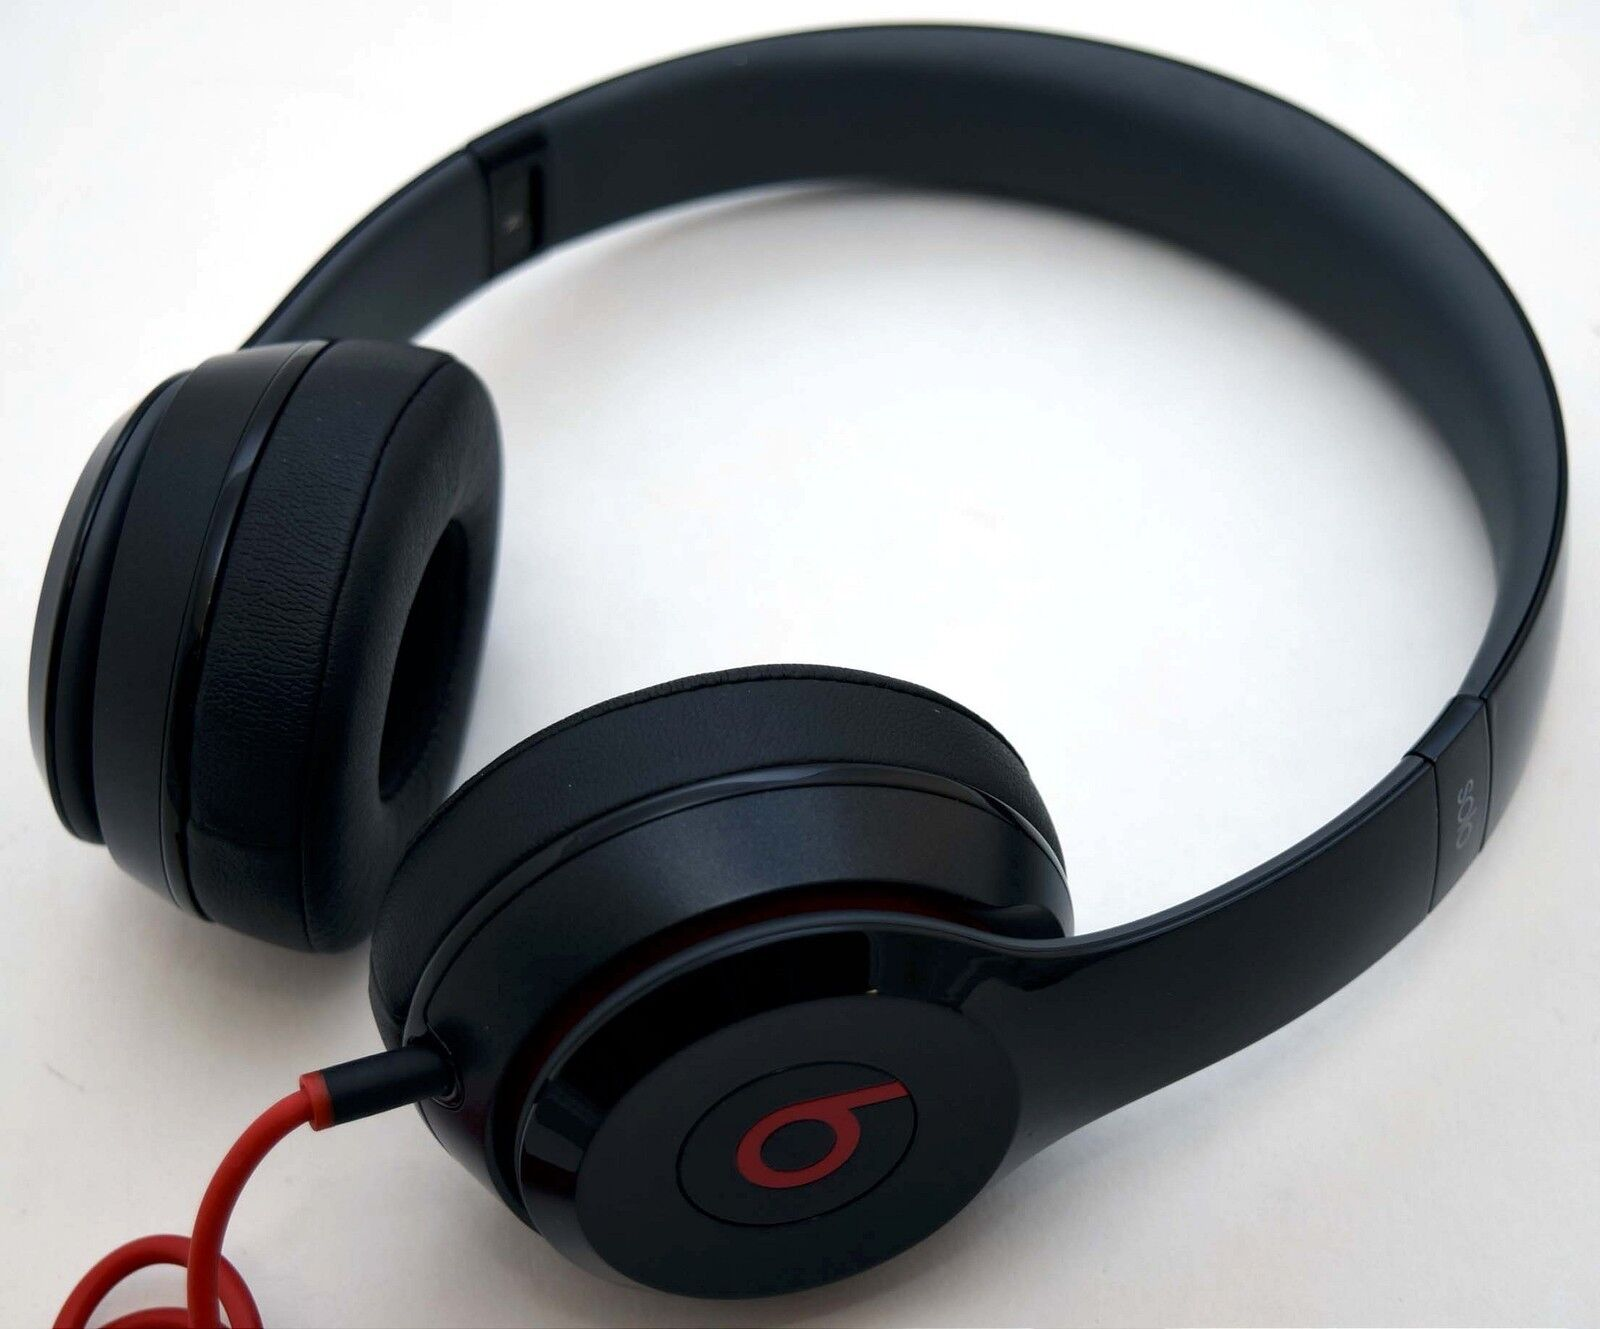 GENUINE Beats by Dr Dre Solo 2 Wired Headphones BLACK ...